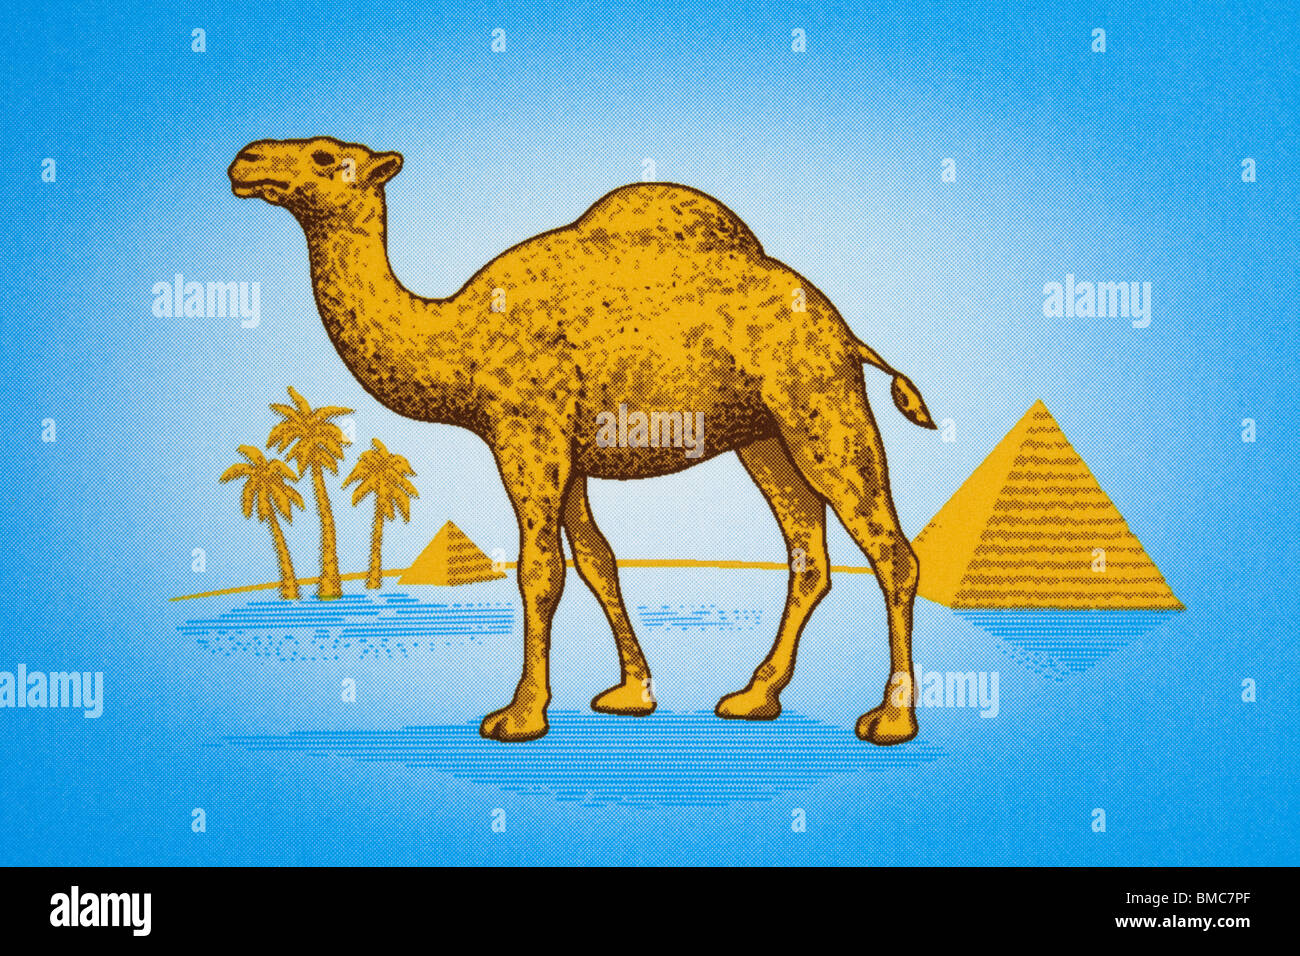 camel cigarette logo stock photo 29773031 alamy rh alamy com Camel Cigarettes Logo Subliminal camel cigarettes logo hidden images